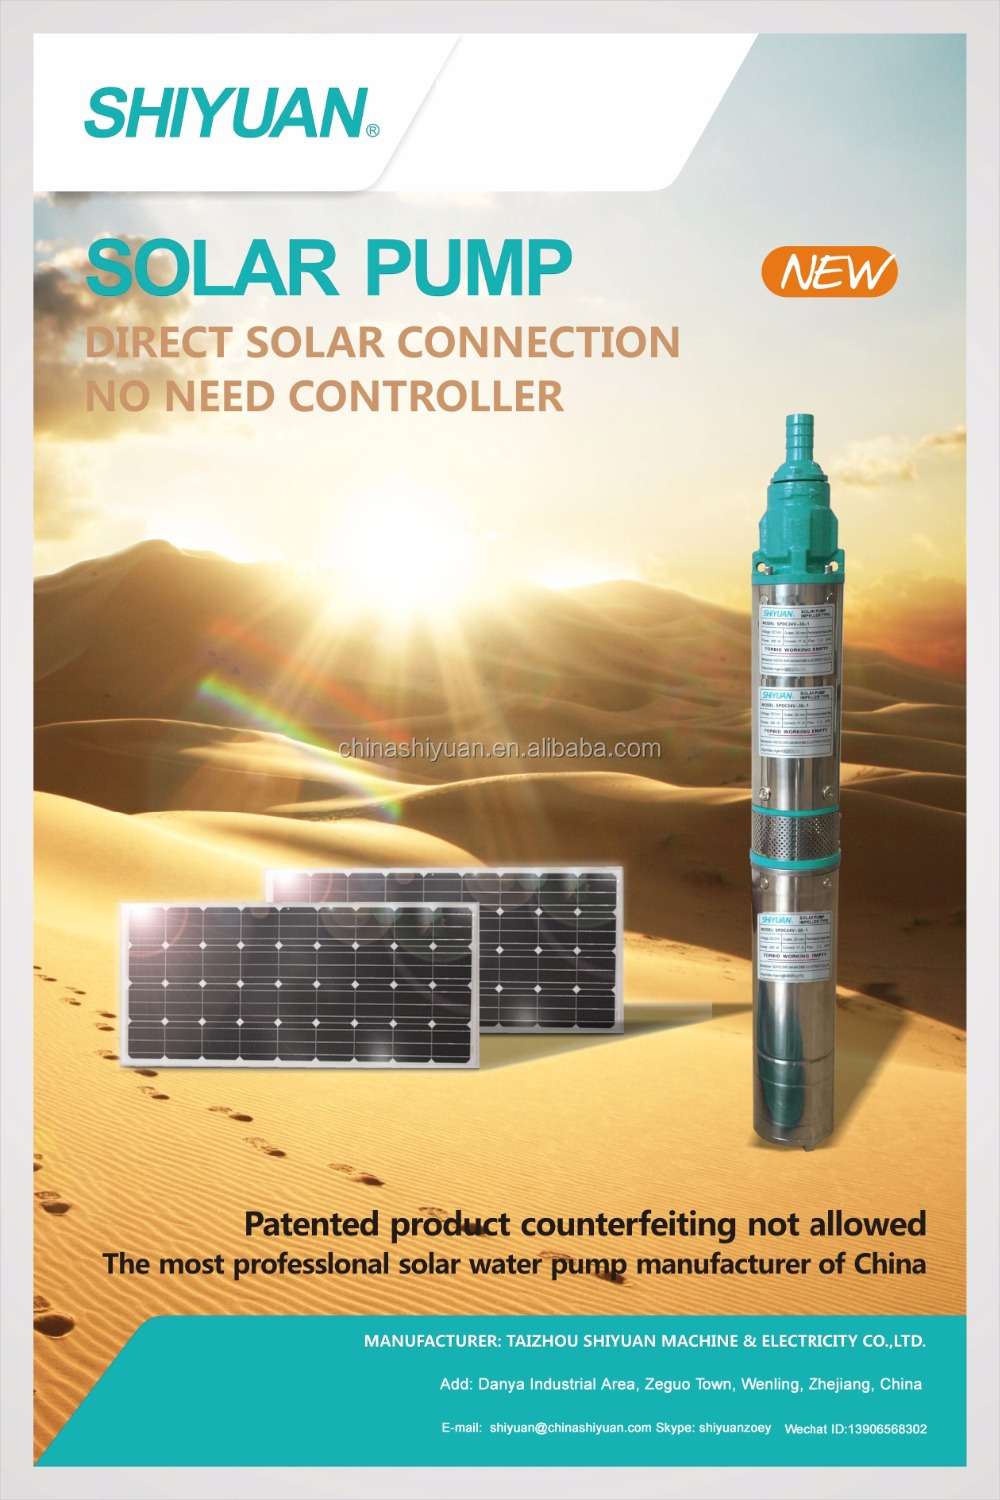 DC SOLAR PUMP MAX HEAD 20M WITH 20M CABLE 20 no need controller